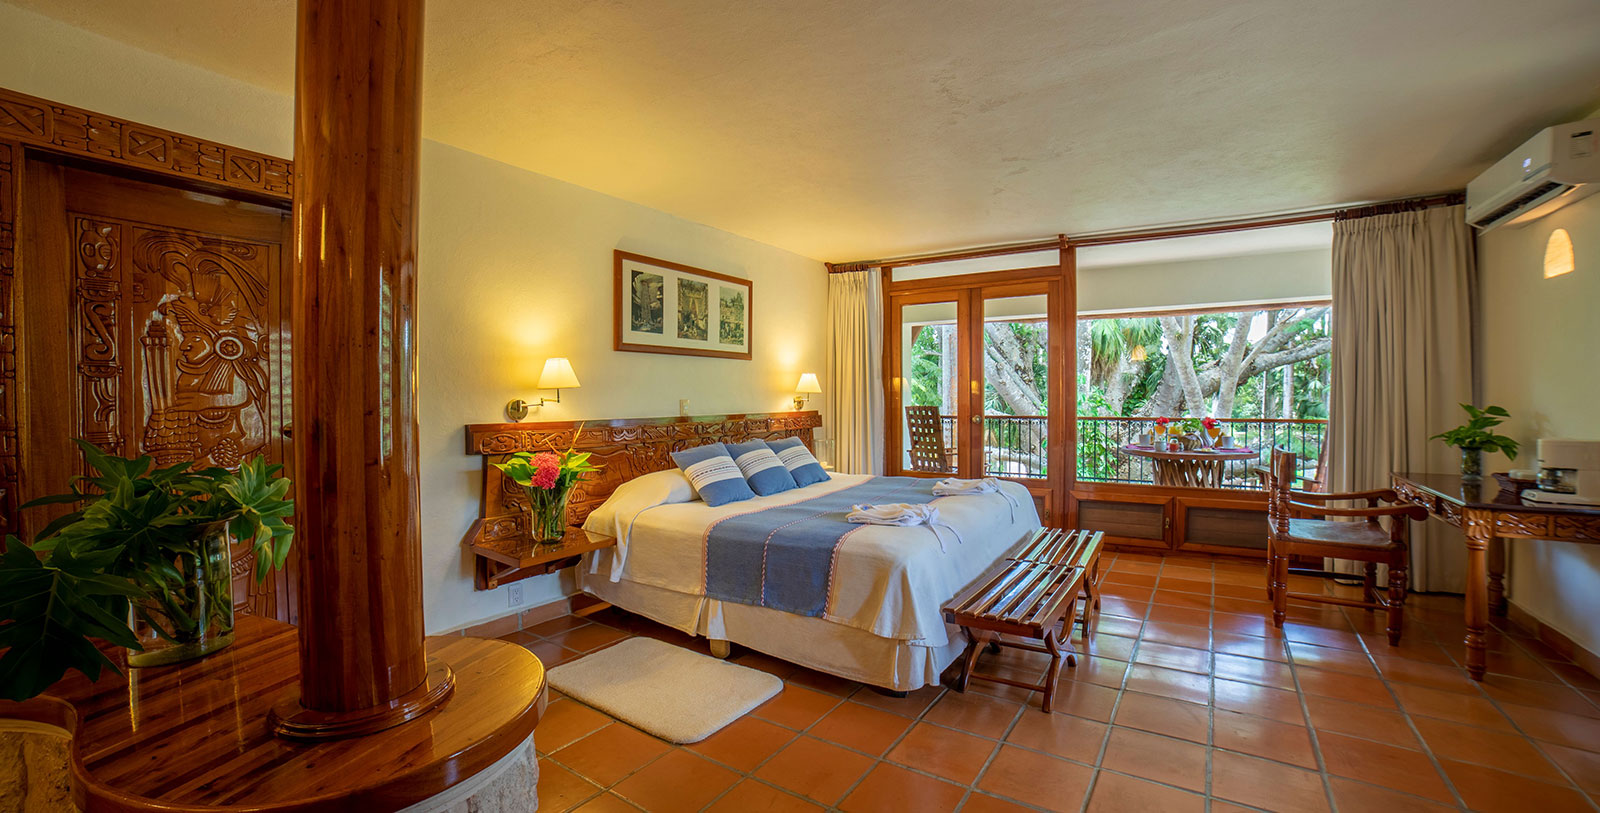 Image of Single Guestroom Mayaland Hotel & Bungalows,1923, Member of Historic Hotels Worldwide, in Chichen Itza, Mexico, Accommodations